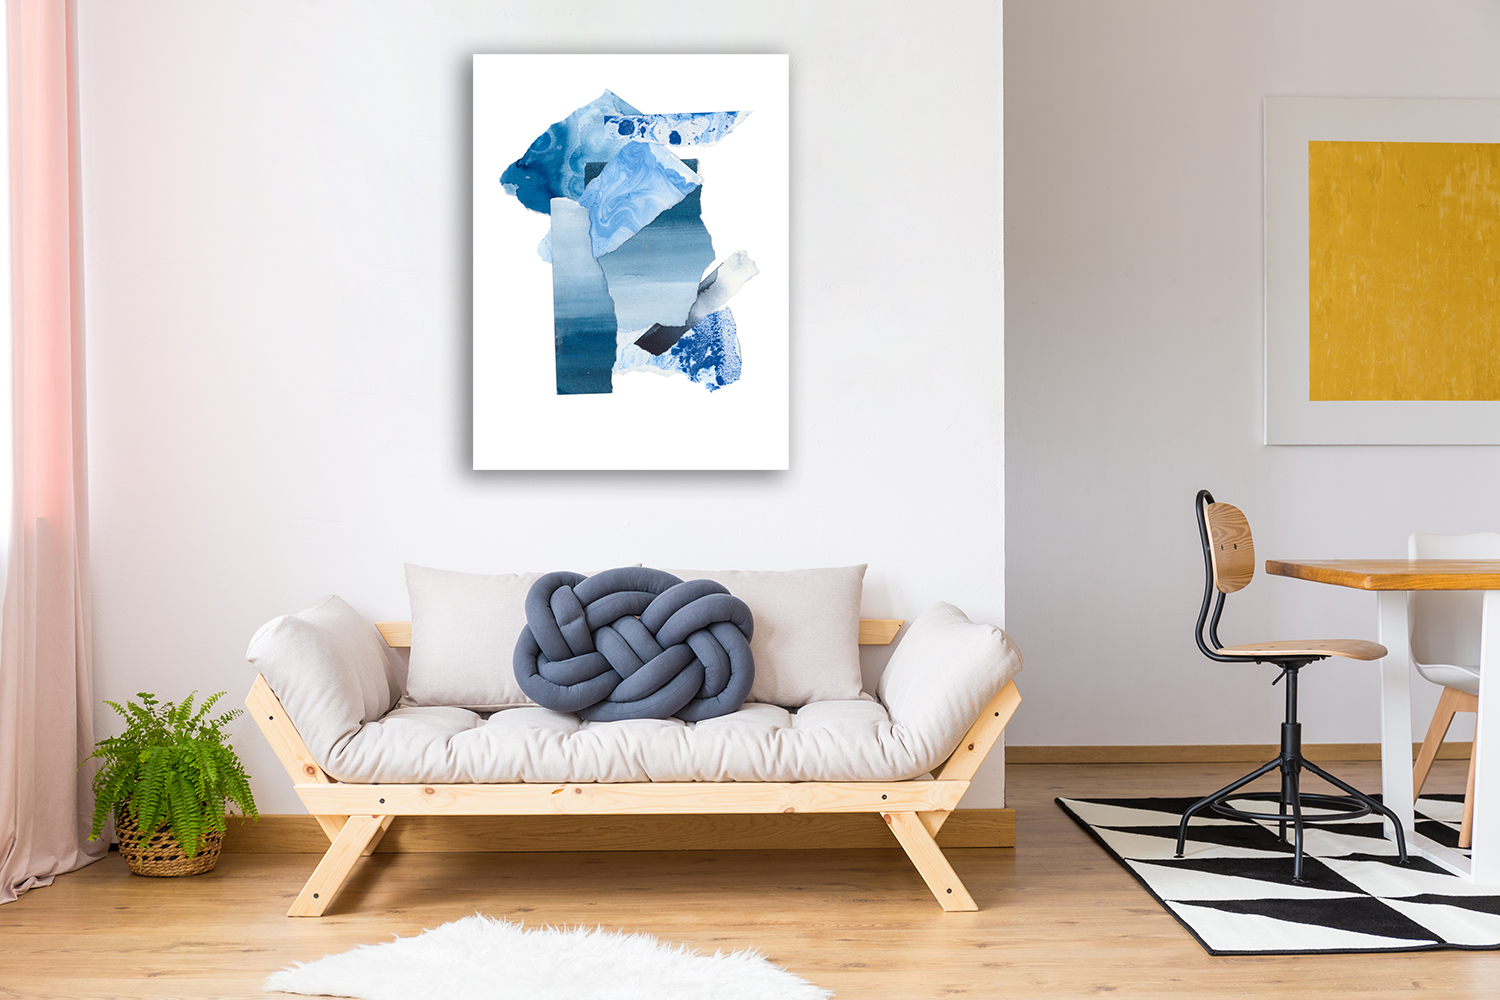 Abstract Portrait Wall Art on Canvas